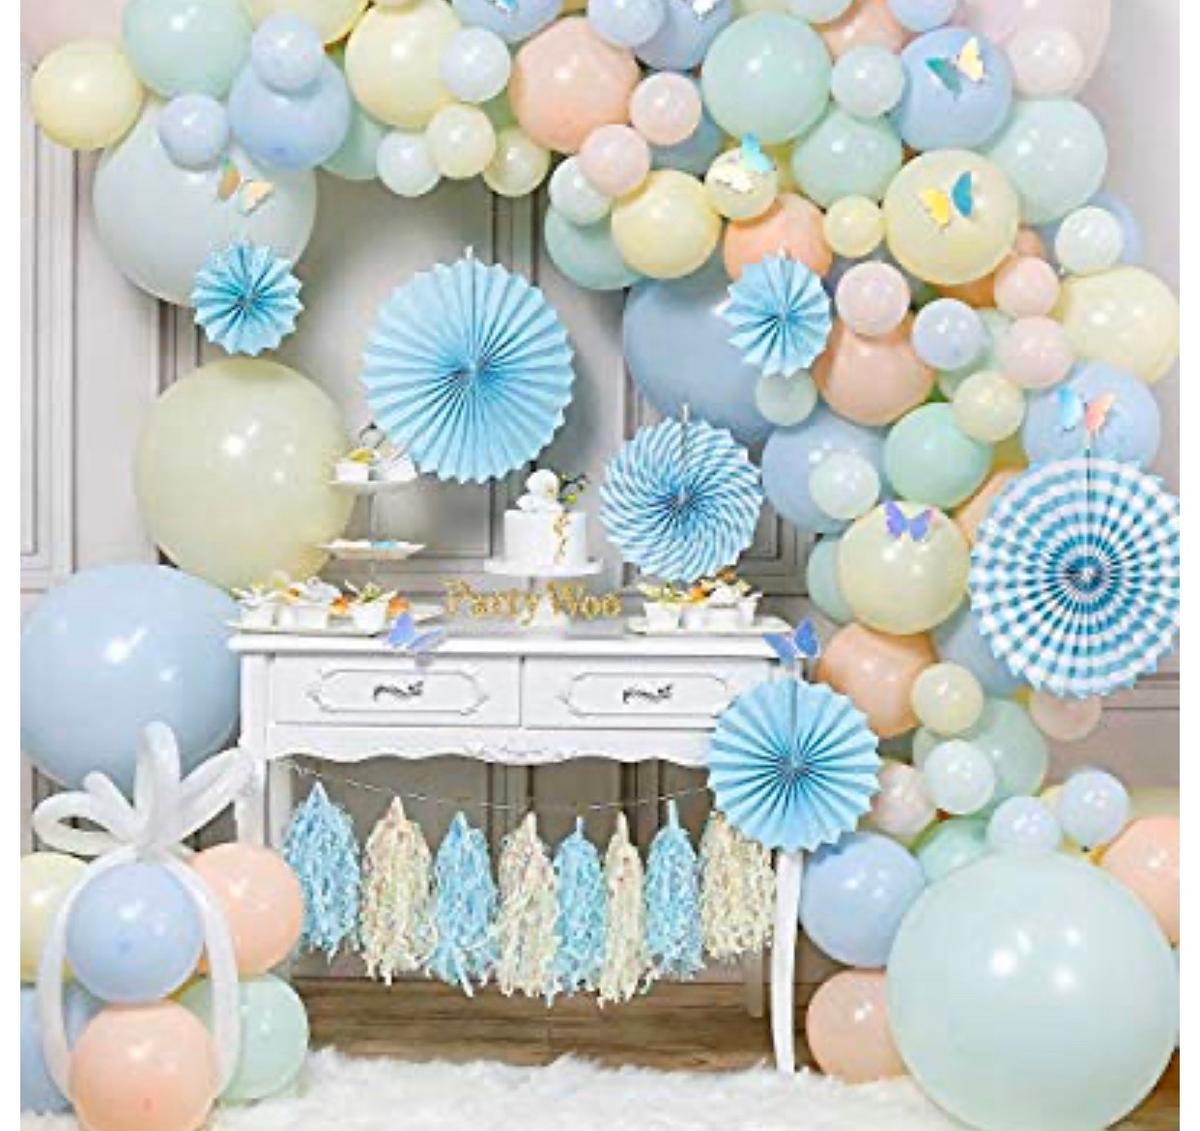 Balloon Decoration Balloon Garland Arch In W13 London Borough Of Ealing For 100 00 For Sale Shpock